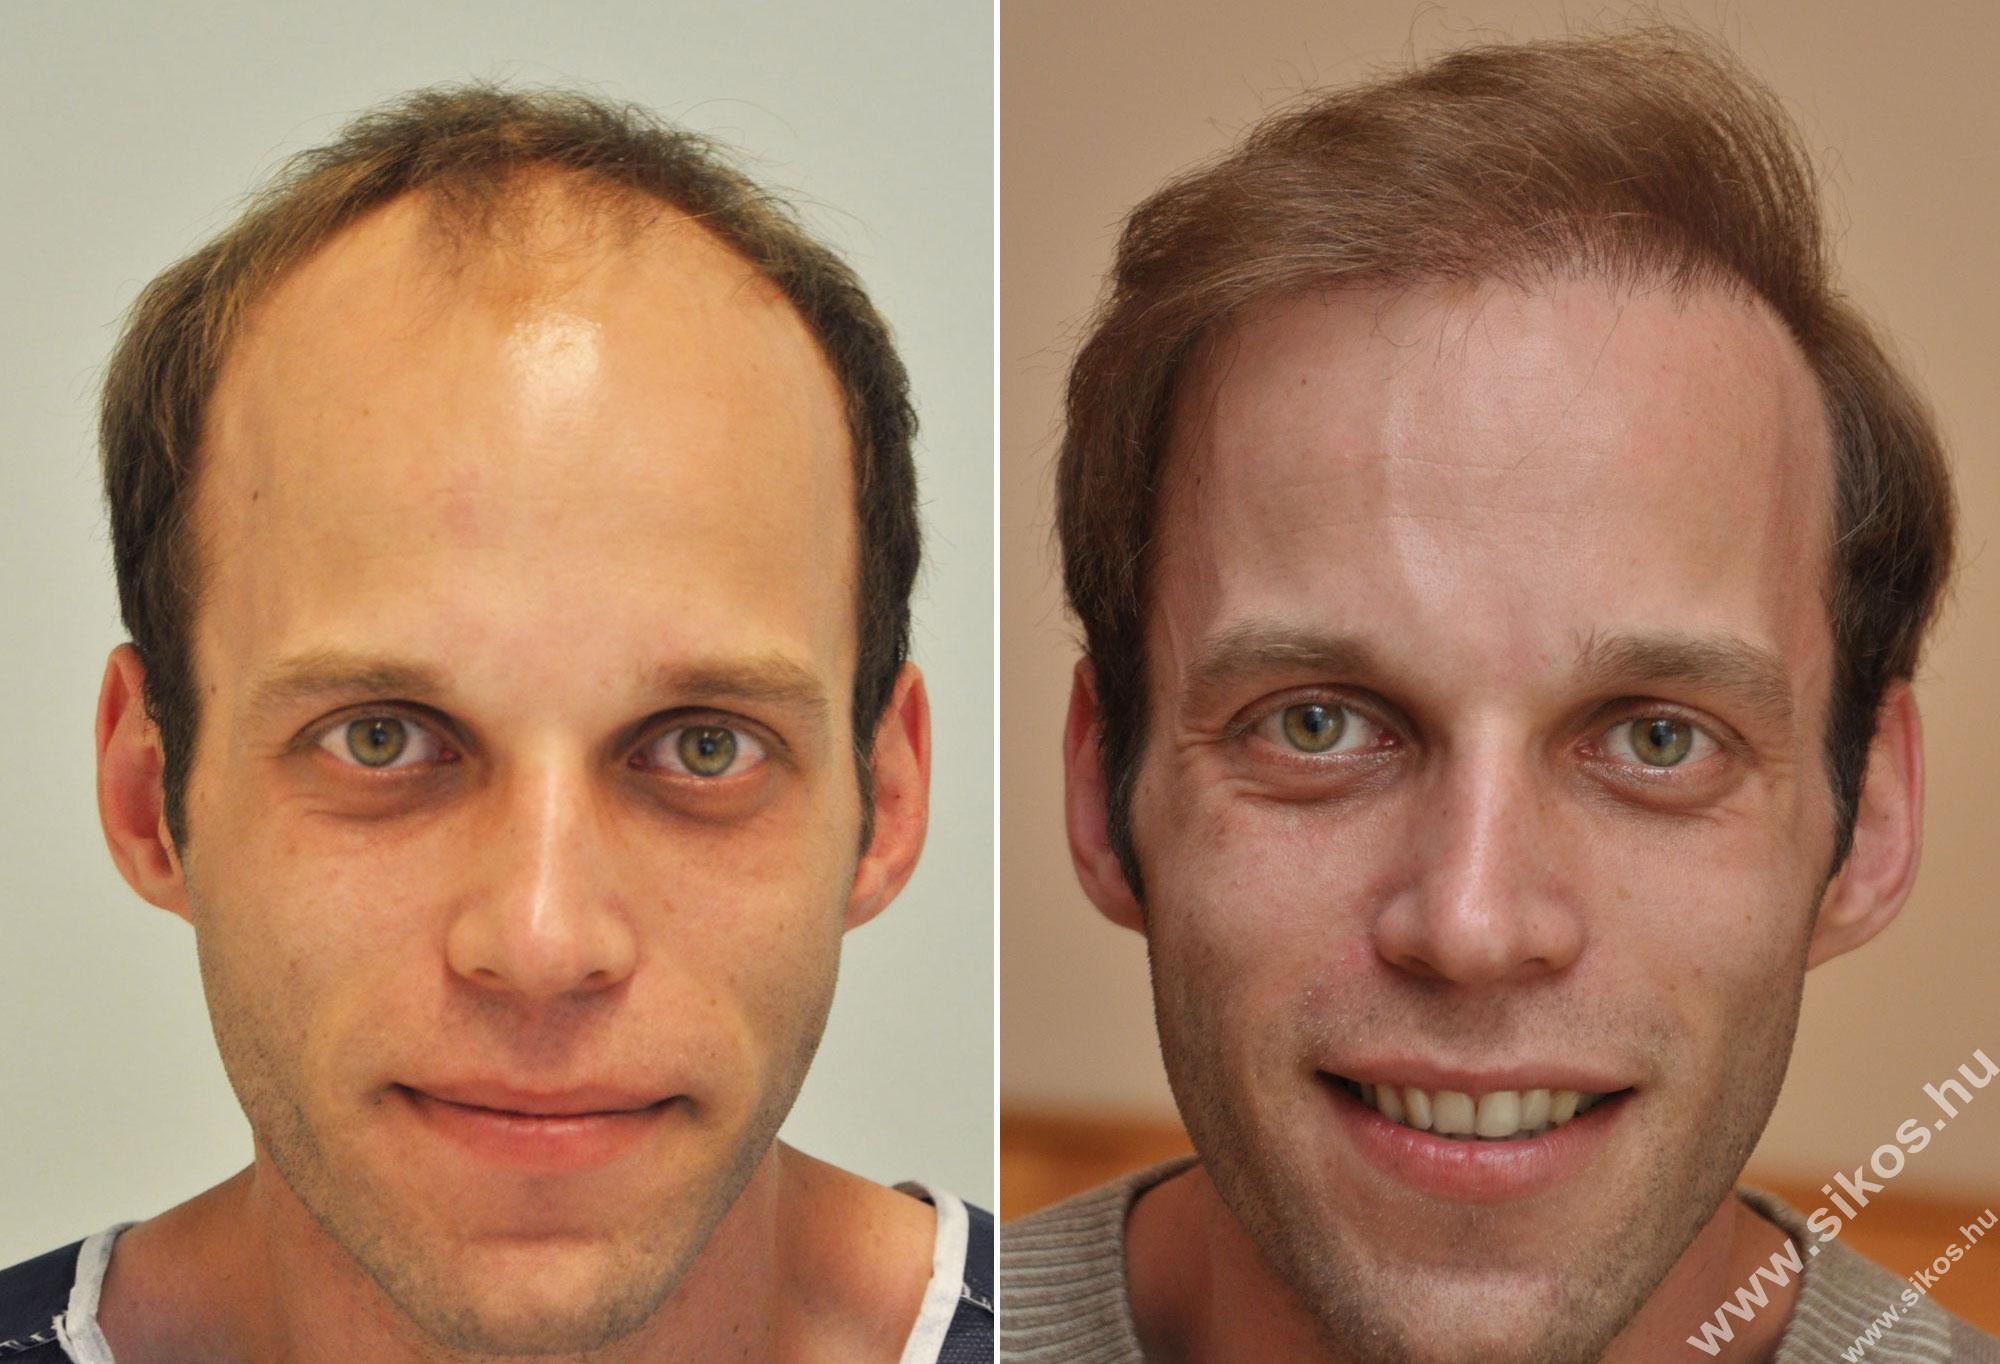 FUE hair transplant Sikos Clinic